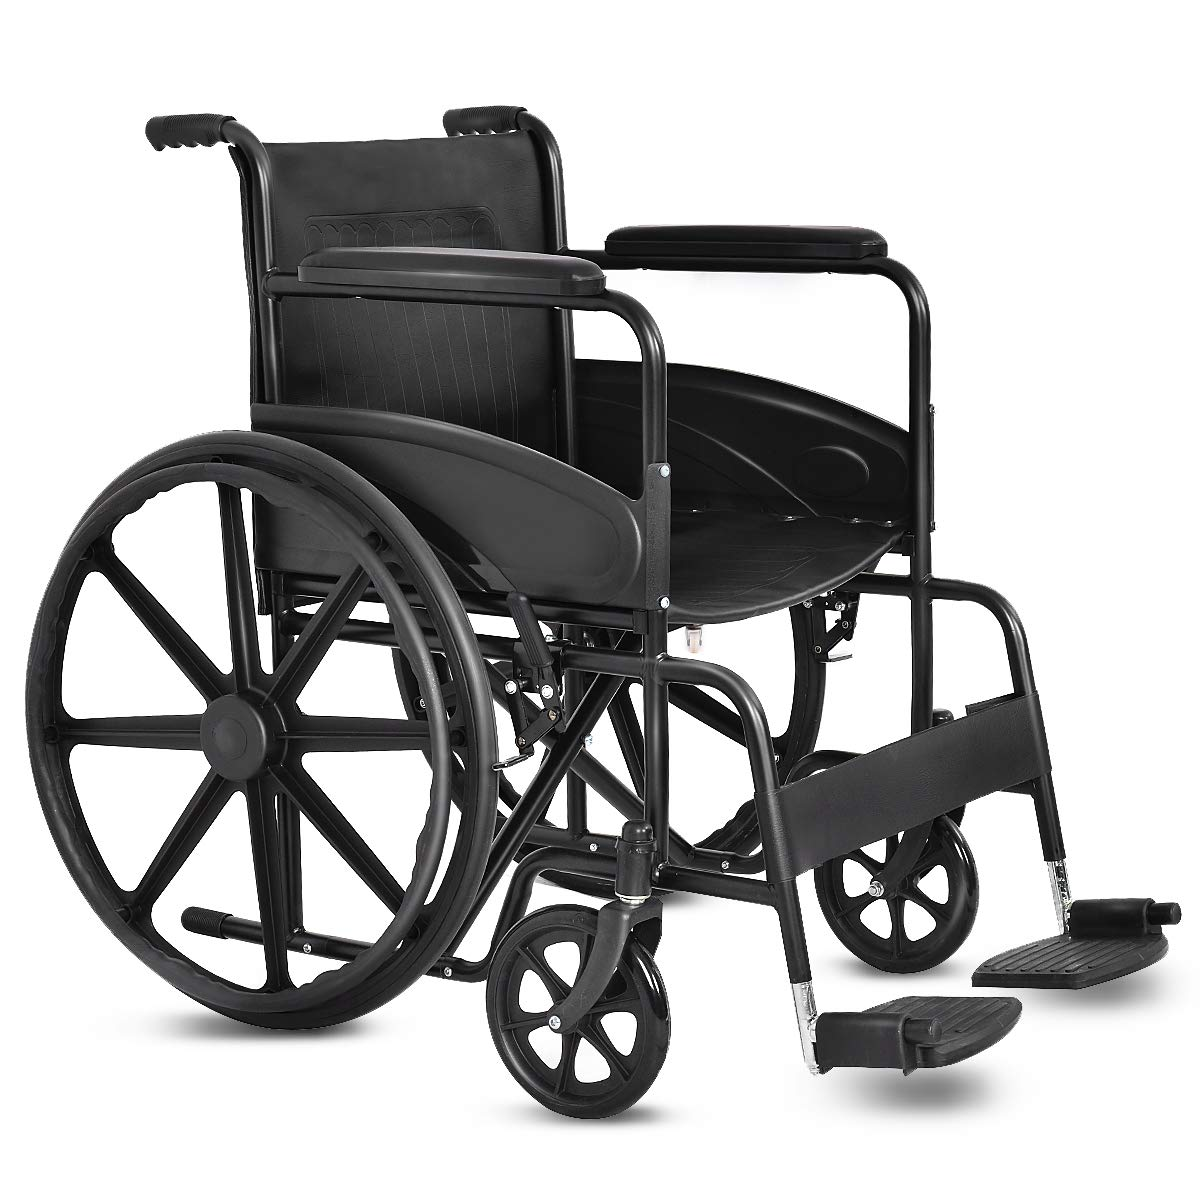 Giantex 24'' Foldable Medical Wheelchair Manual, Large 23'' Durable Rubber Wheel Smart Brakes 8'' Casters Pockets Footrest FDA Approved Flip Back Wide Padded Seat Arms, Transport Wheelchairs, Black by Giantex